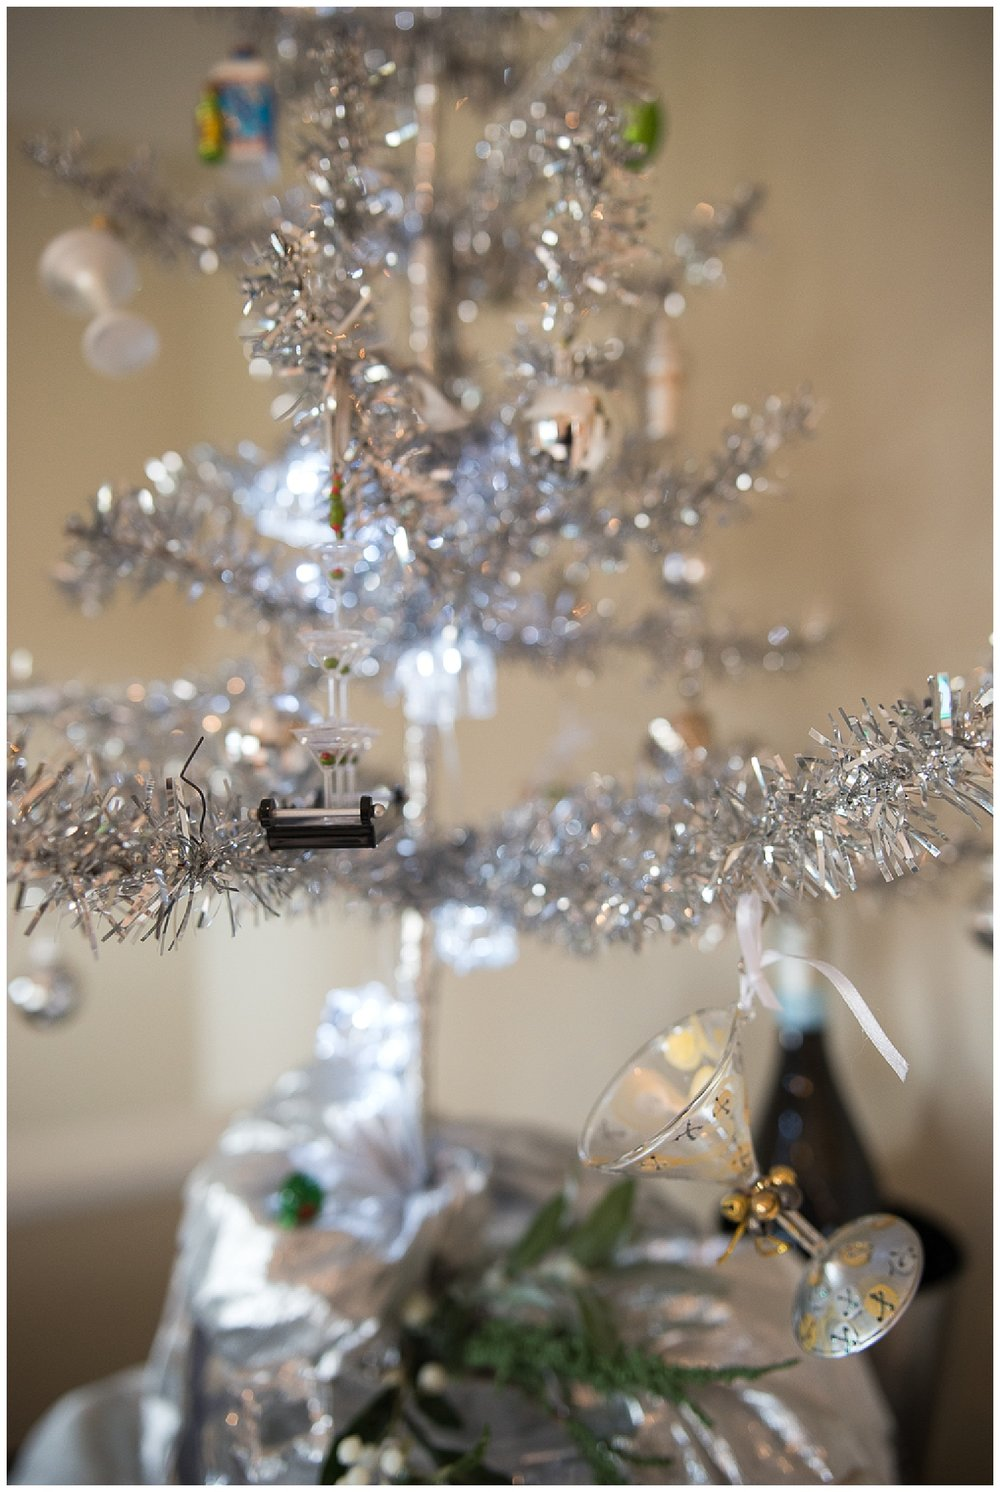 And here we have the Martini Tree.  How cute is that tiny martini glass?  That's about the size I need.  : )